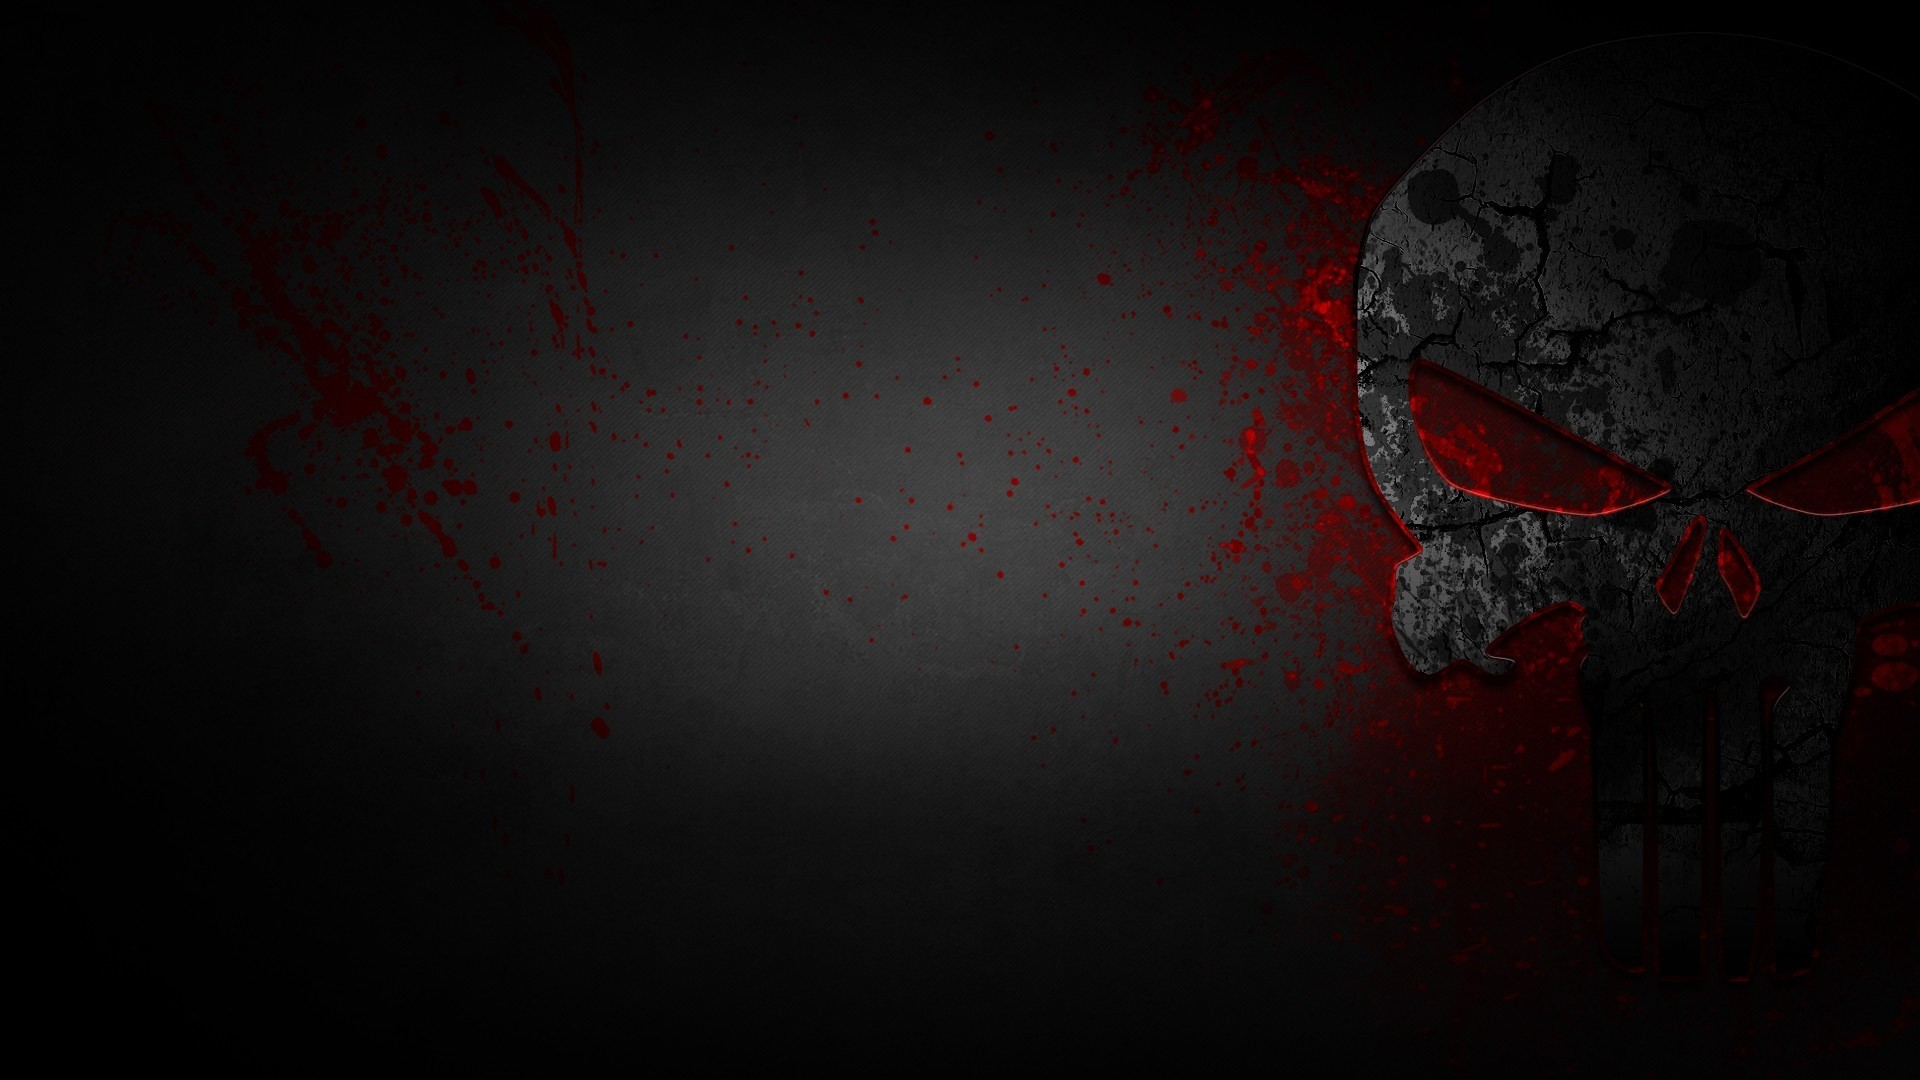 Punisher HD Wallpapers/Backgrounds For Free Download, BsnSCB 1920×1080 Punisher  Backgrounds (